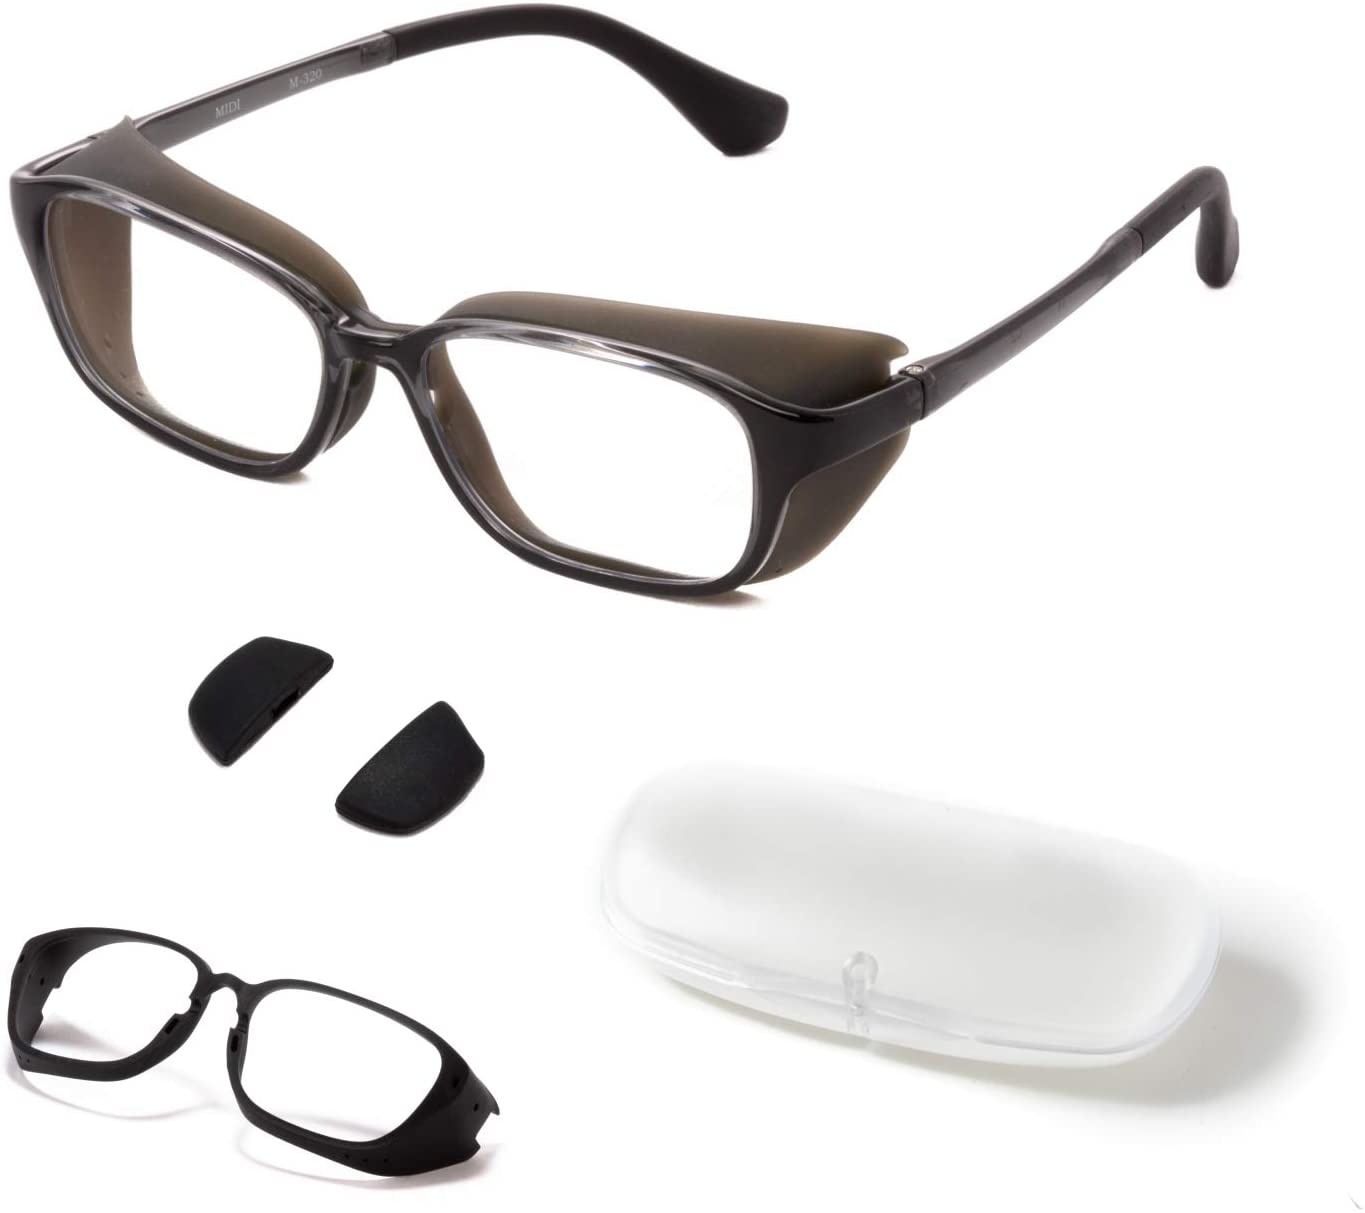 MIDI Anti Pollen Glasses for Hay Fever Protection with Removable Shields | Modern Blue Light Blocking Computer Glasses | UV and Blue Light Blocking Lenses (m320c2-smoke-us)